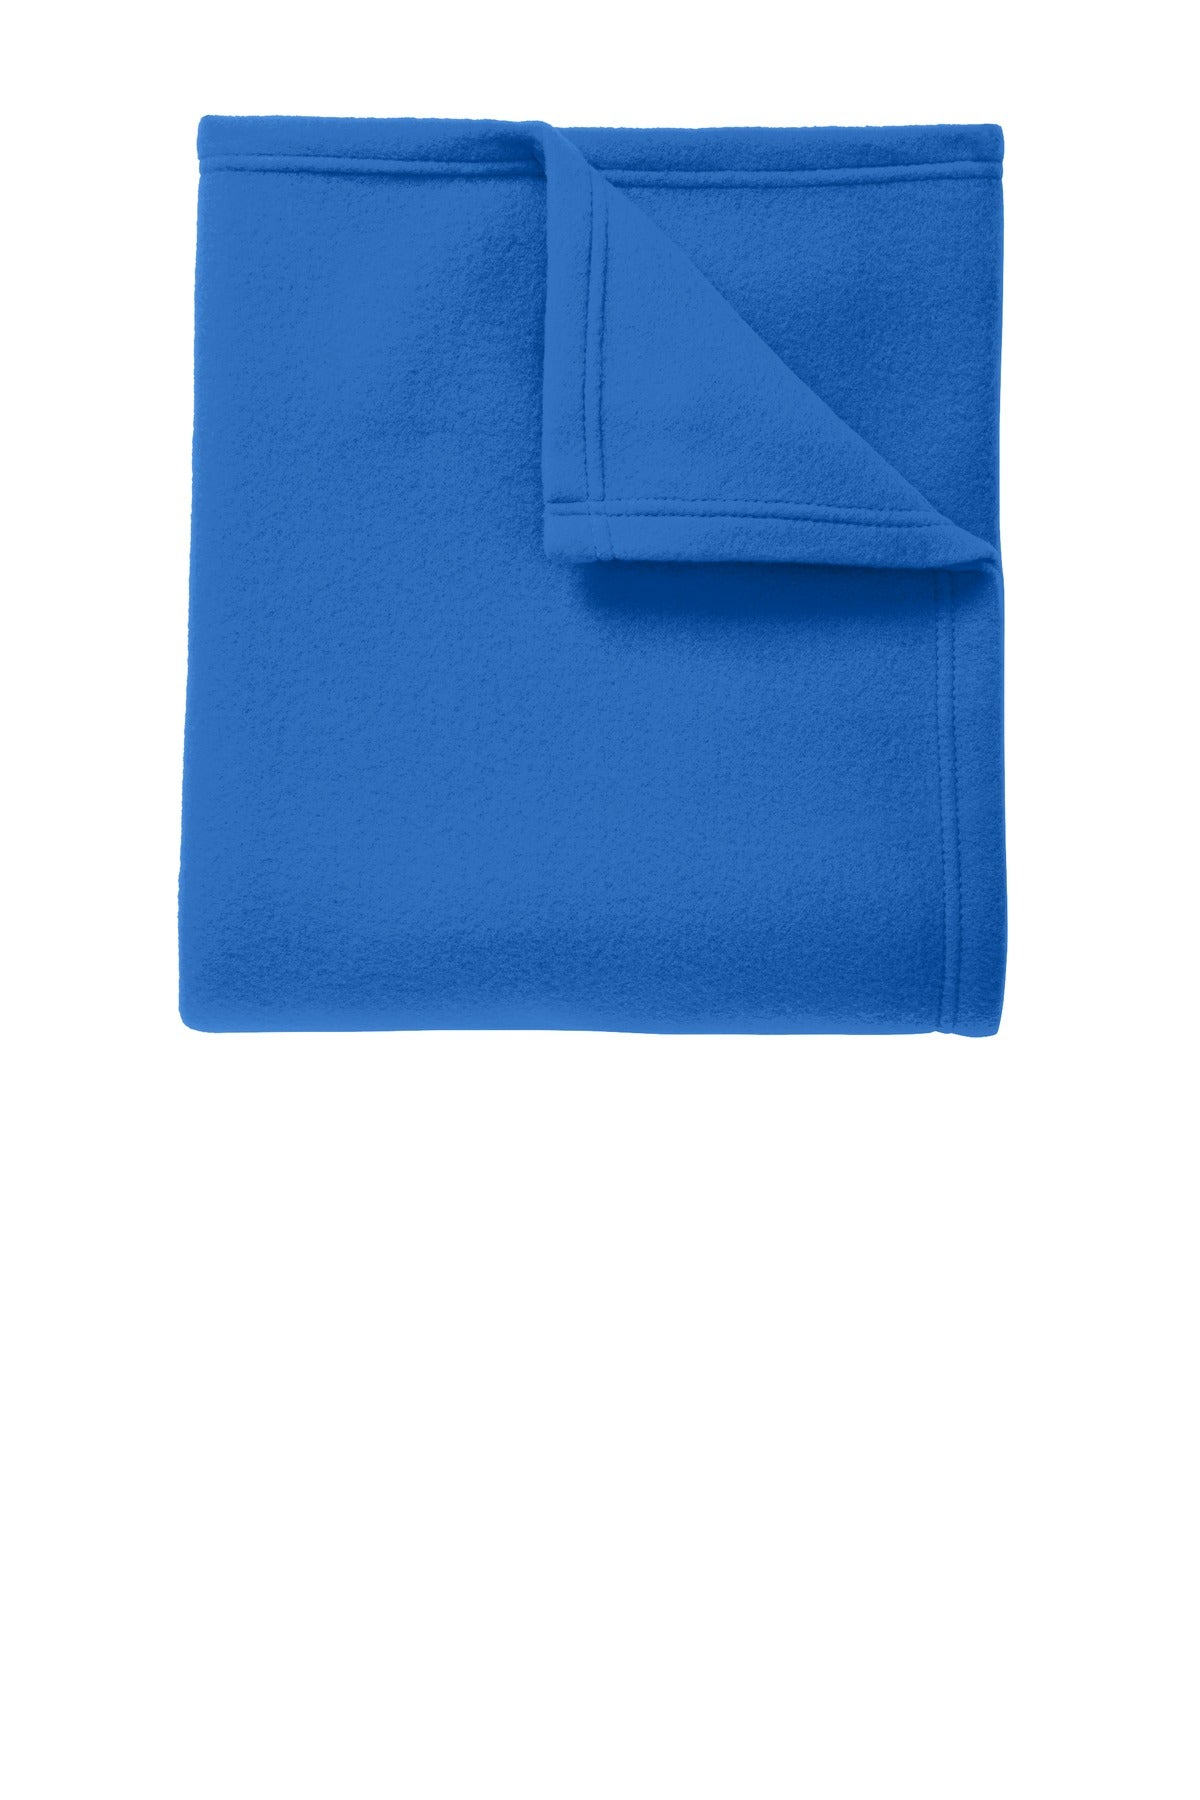 Snorkel Blue Port Authority Core Fleece Blanket.